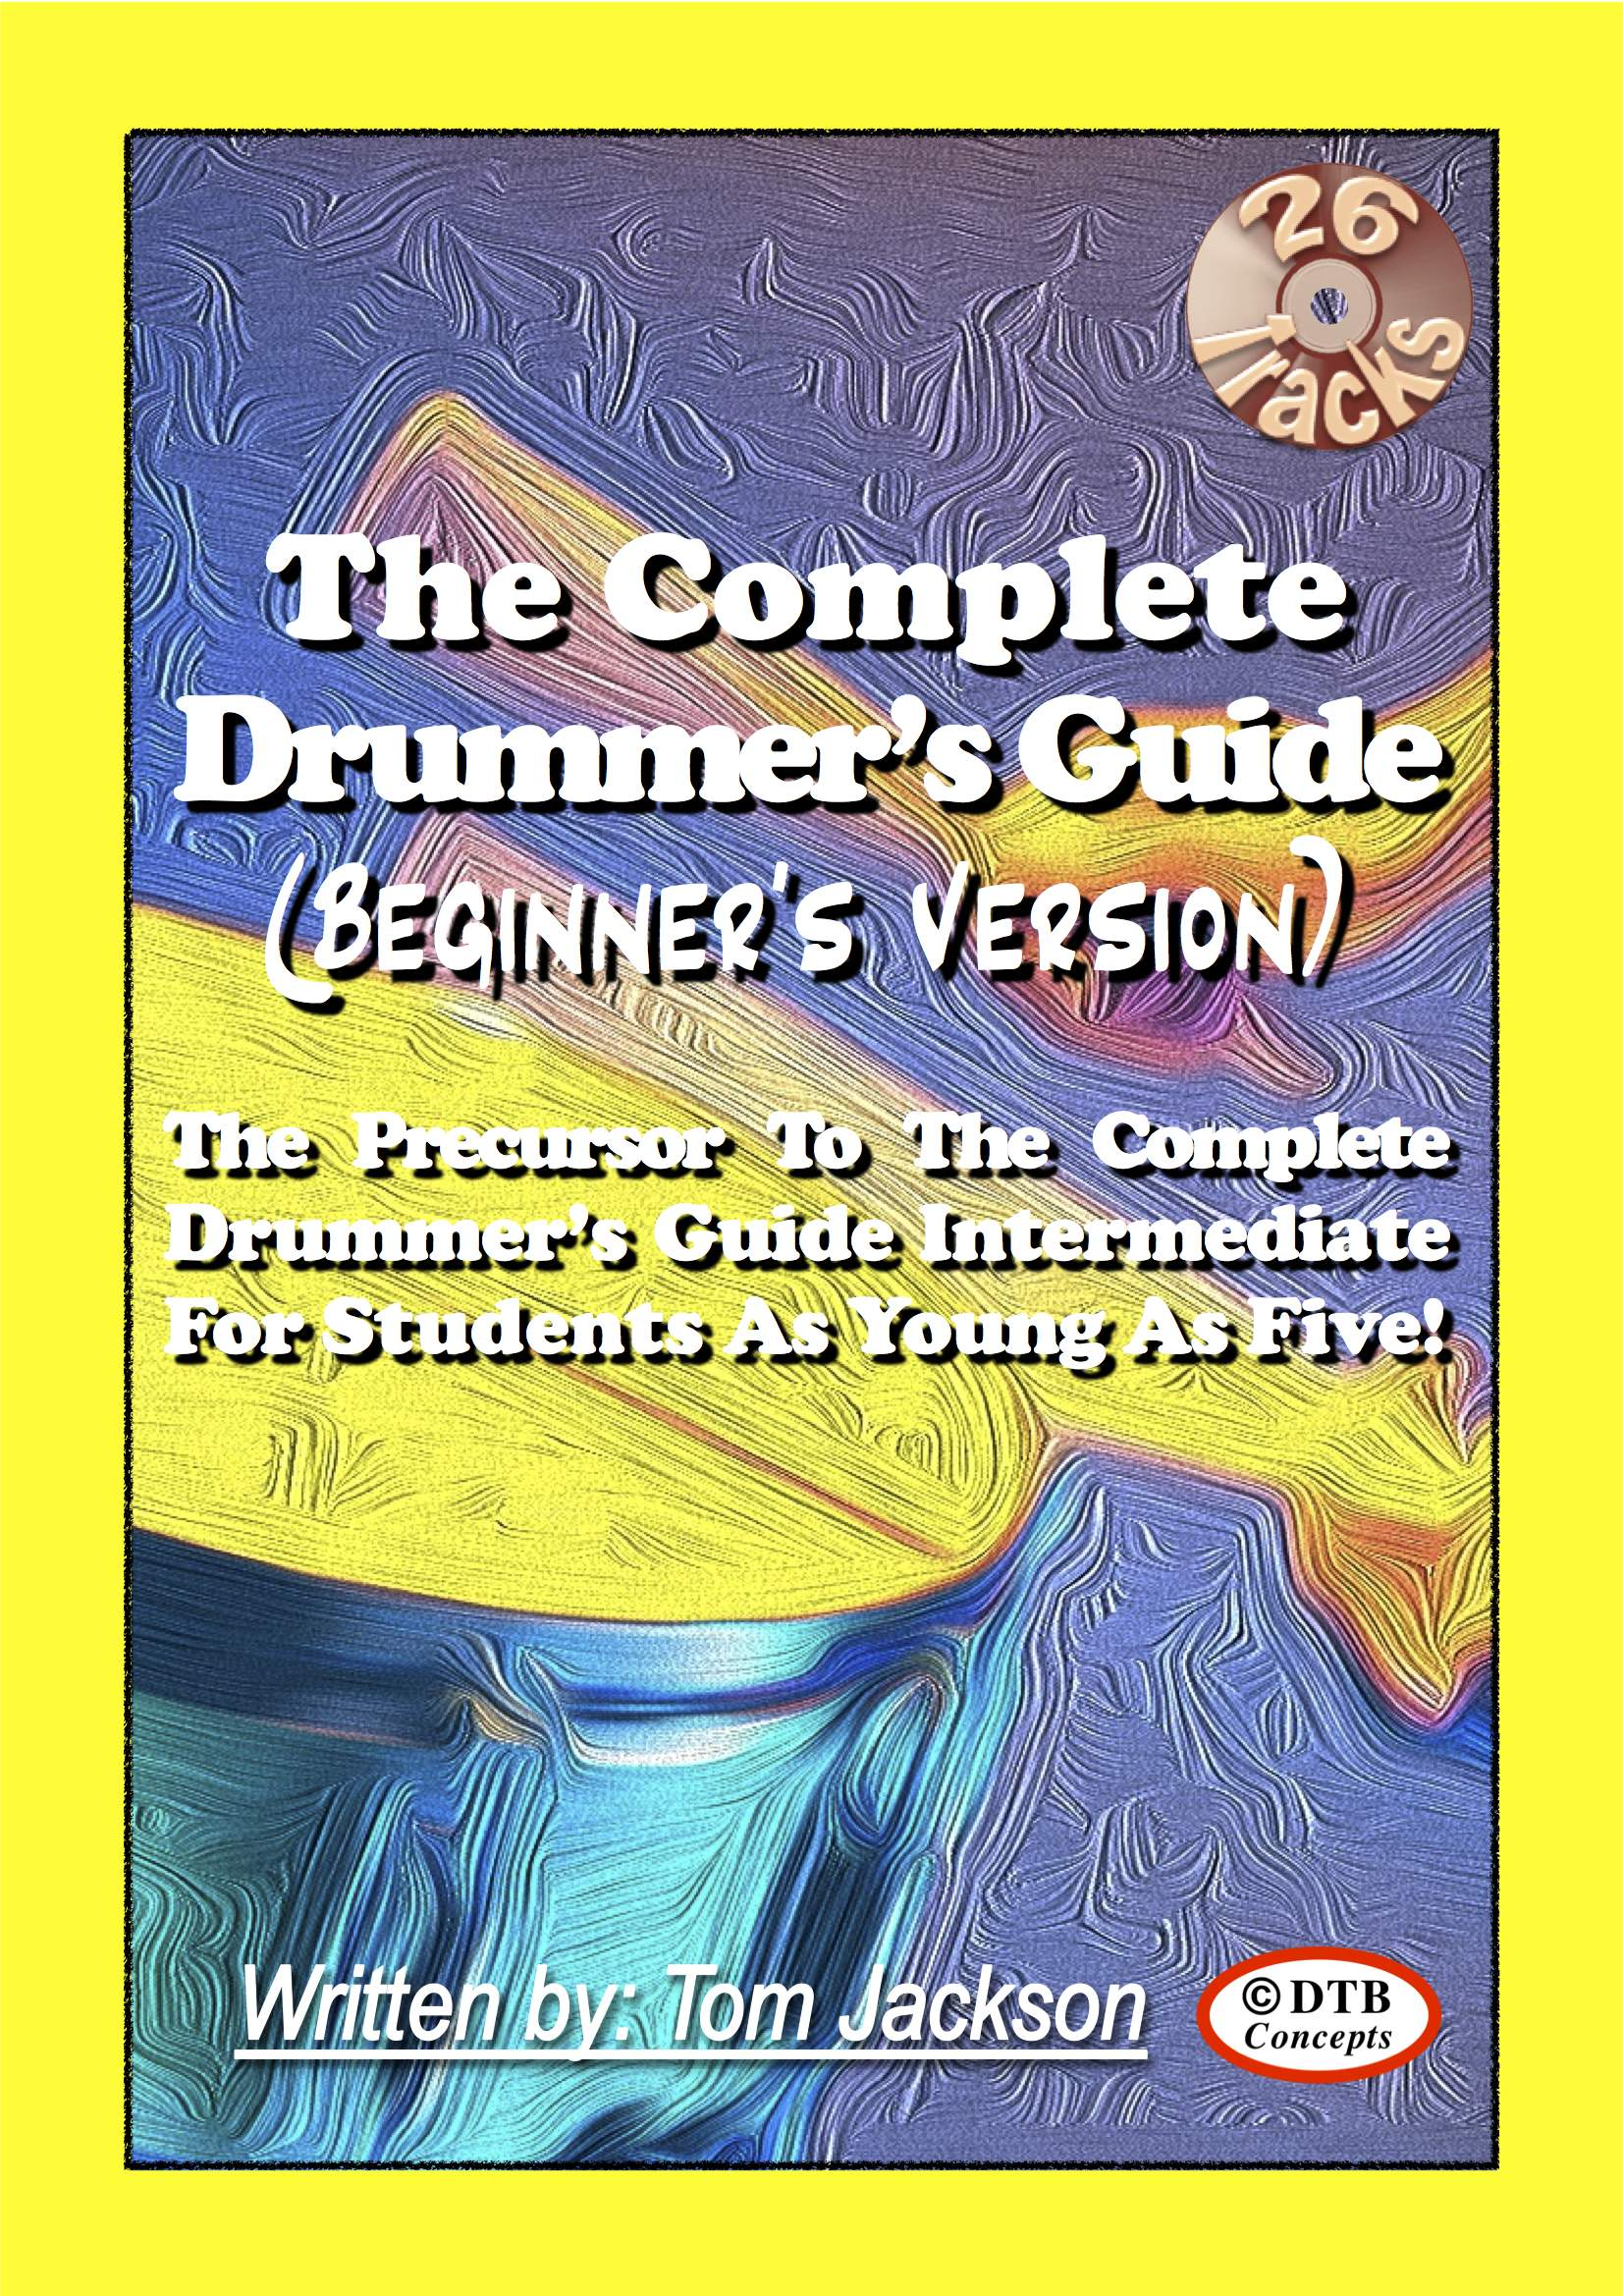 Third Additional product image for - The Complete Drummer's Guide (Beginner's Version) 1st 25 Page Free Sample Booklet - Plus 3 of the 26 Backing Tracks.